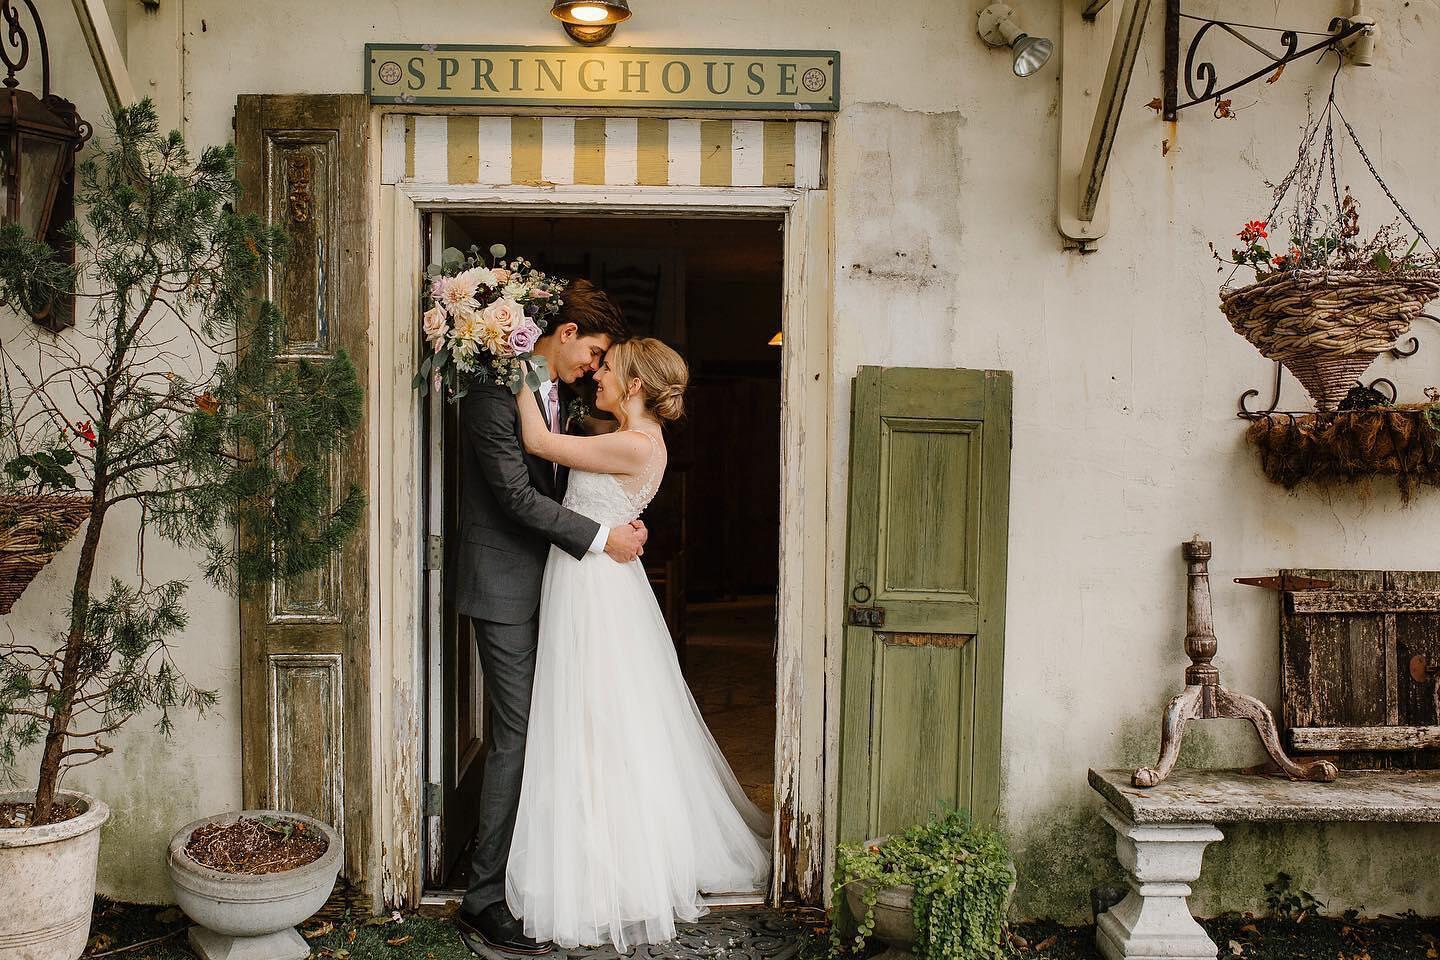 couple leaning together in doorway of a springhouse